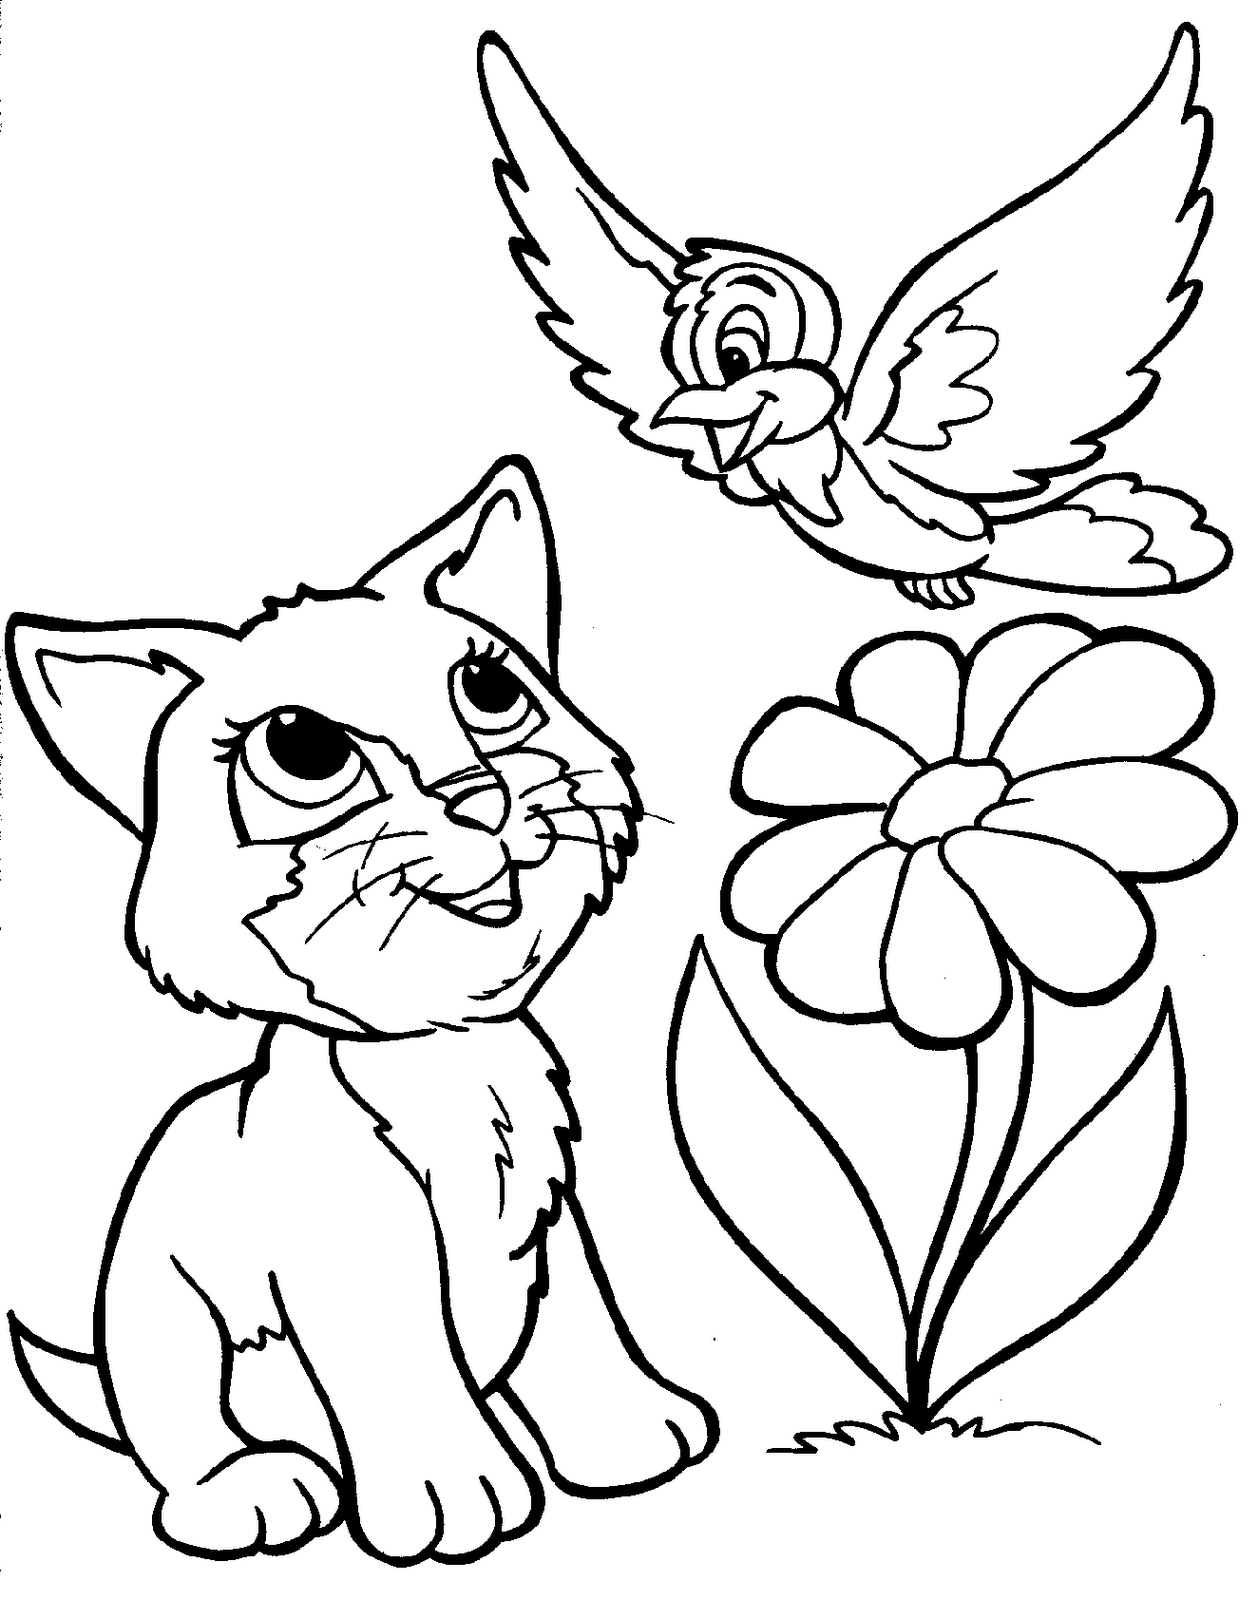 animal coloring 25 cute baby animal coloring pages ideas we need fun animal coloring